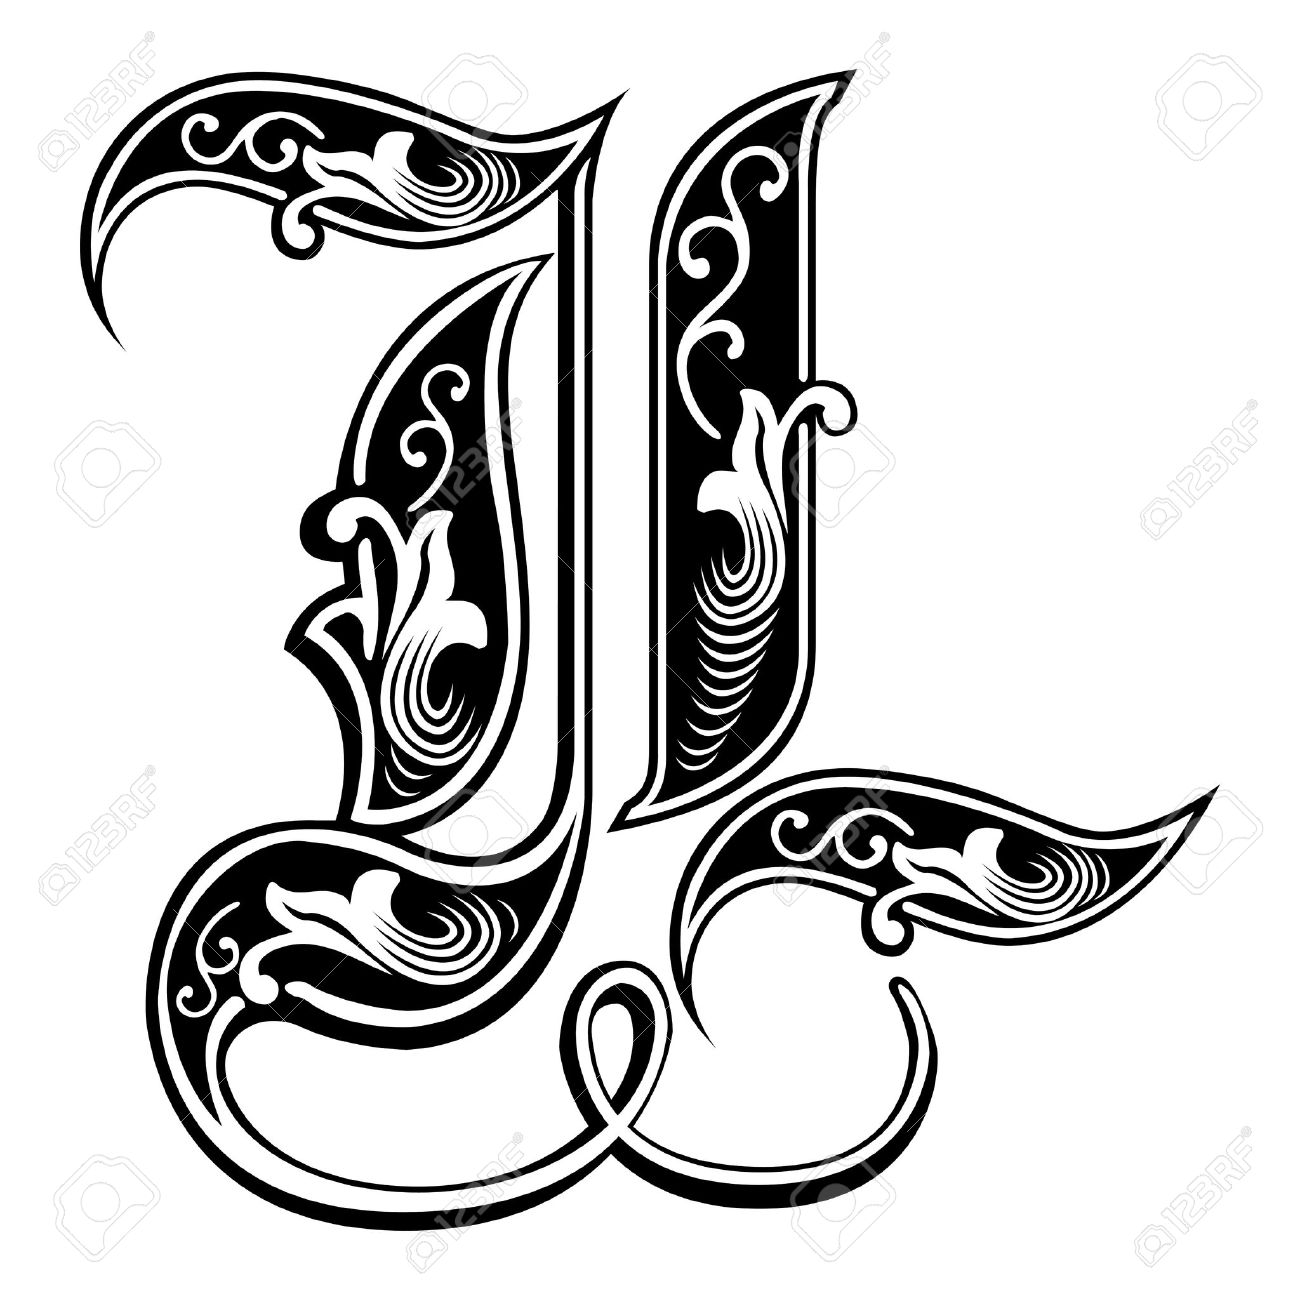 beautiful decoration english alphabets gothic style letter